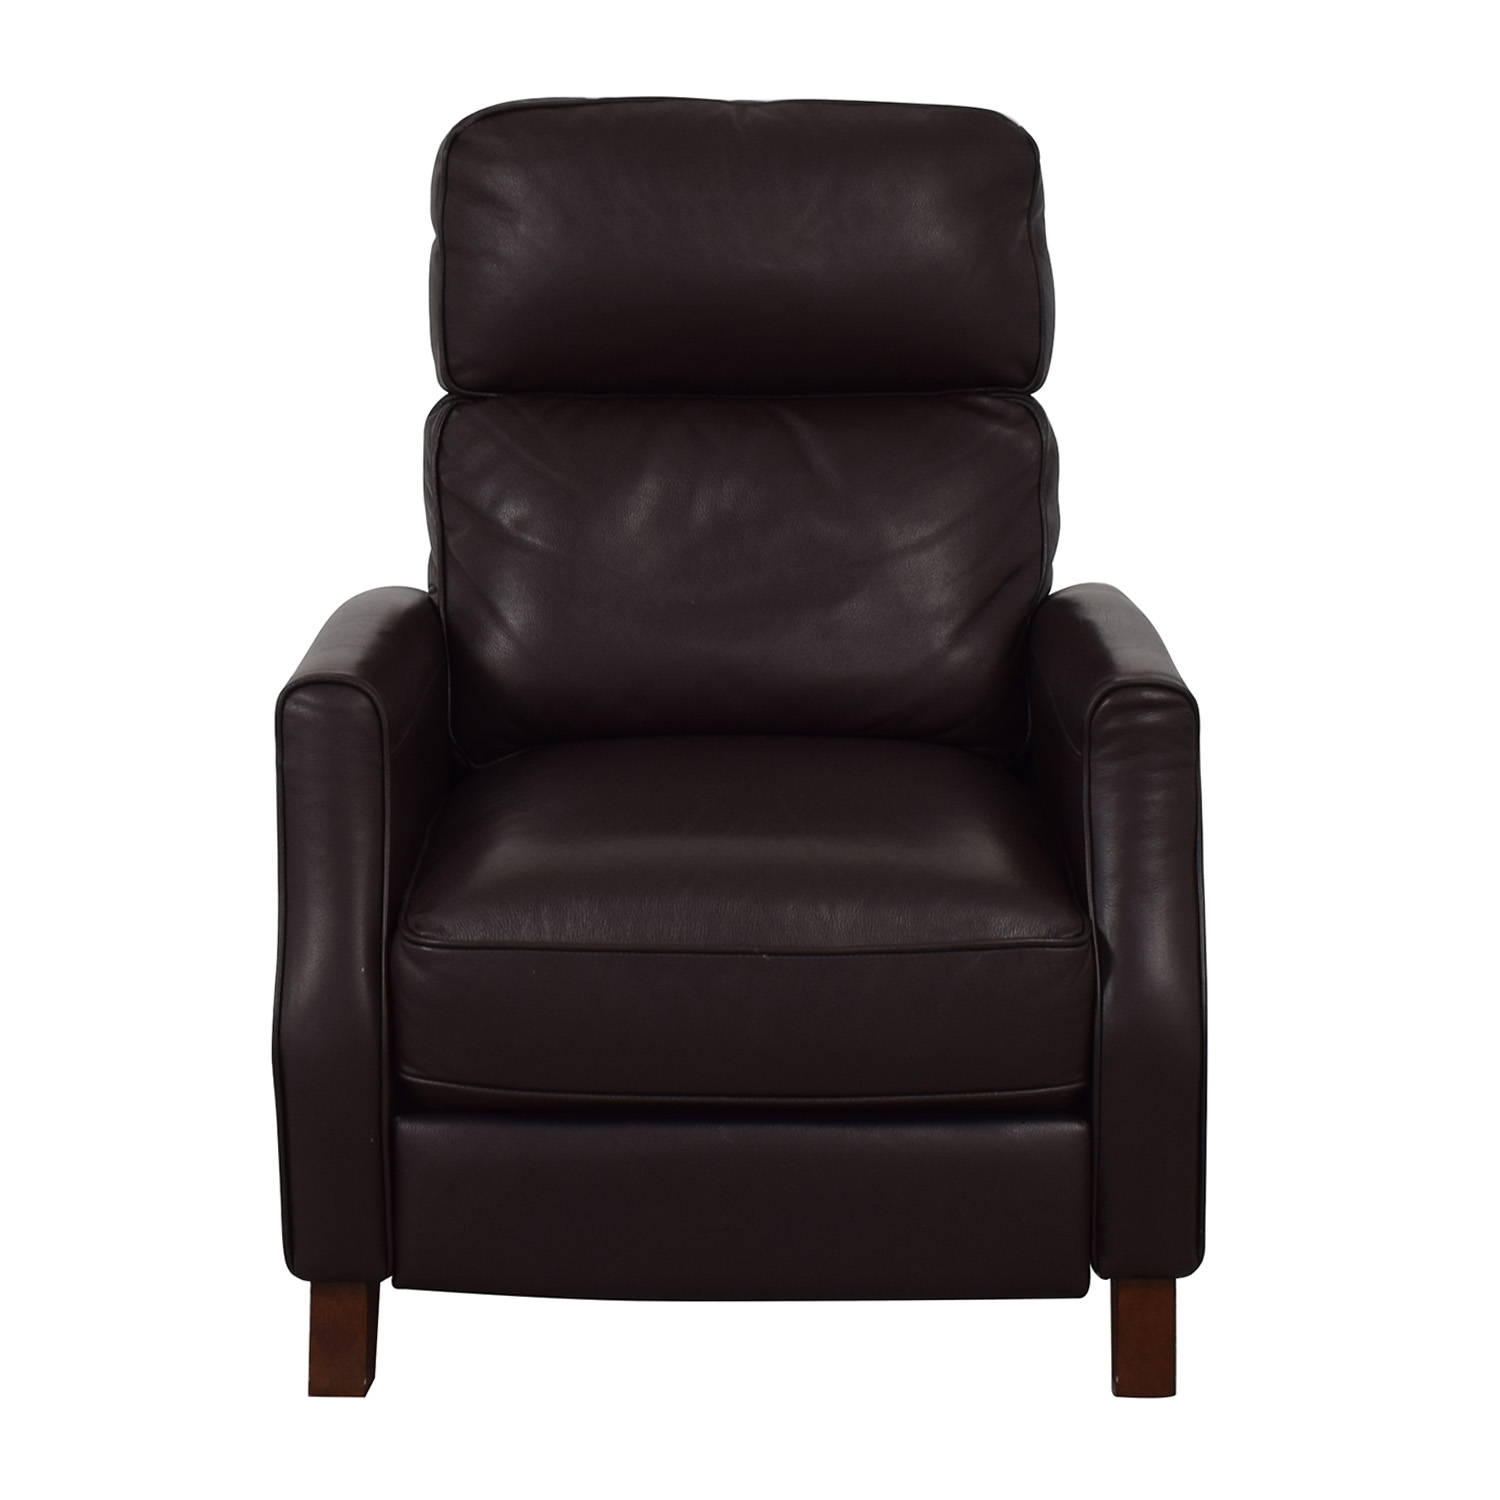 Macy's Macy's Leather Recliner Brown